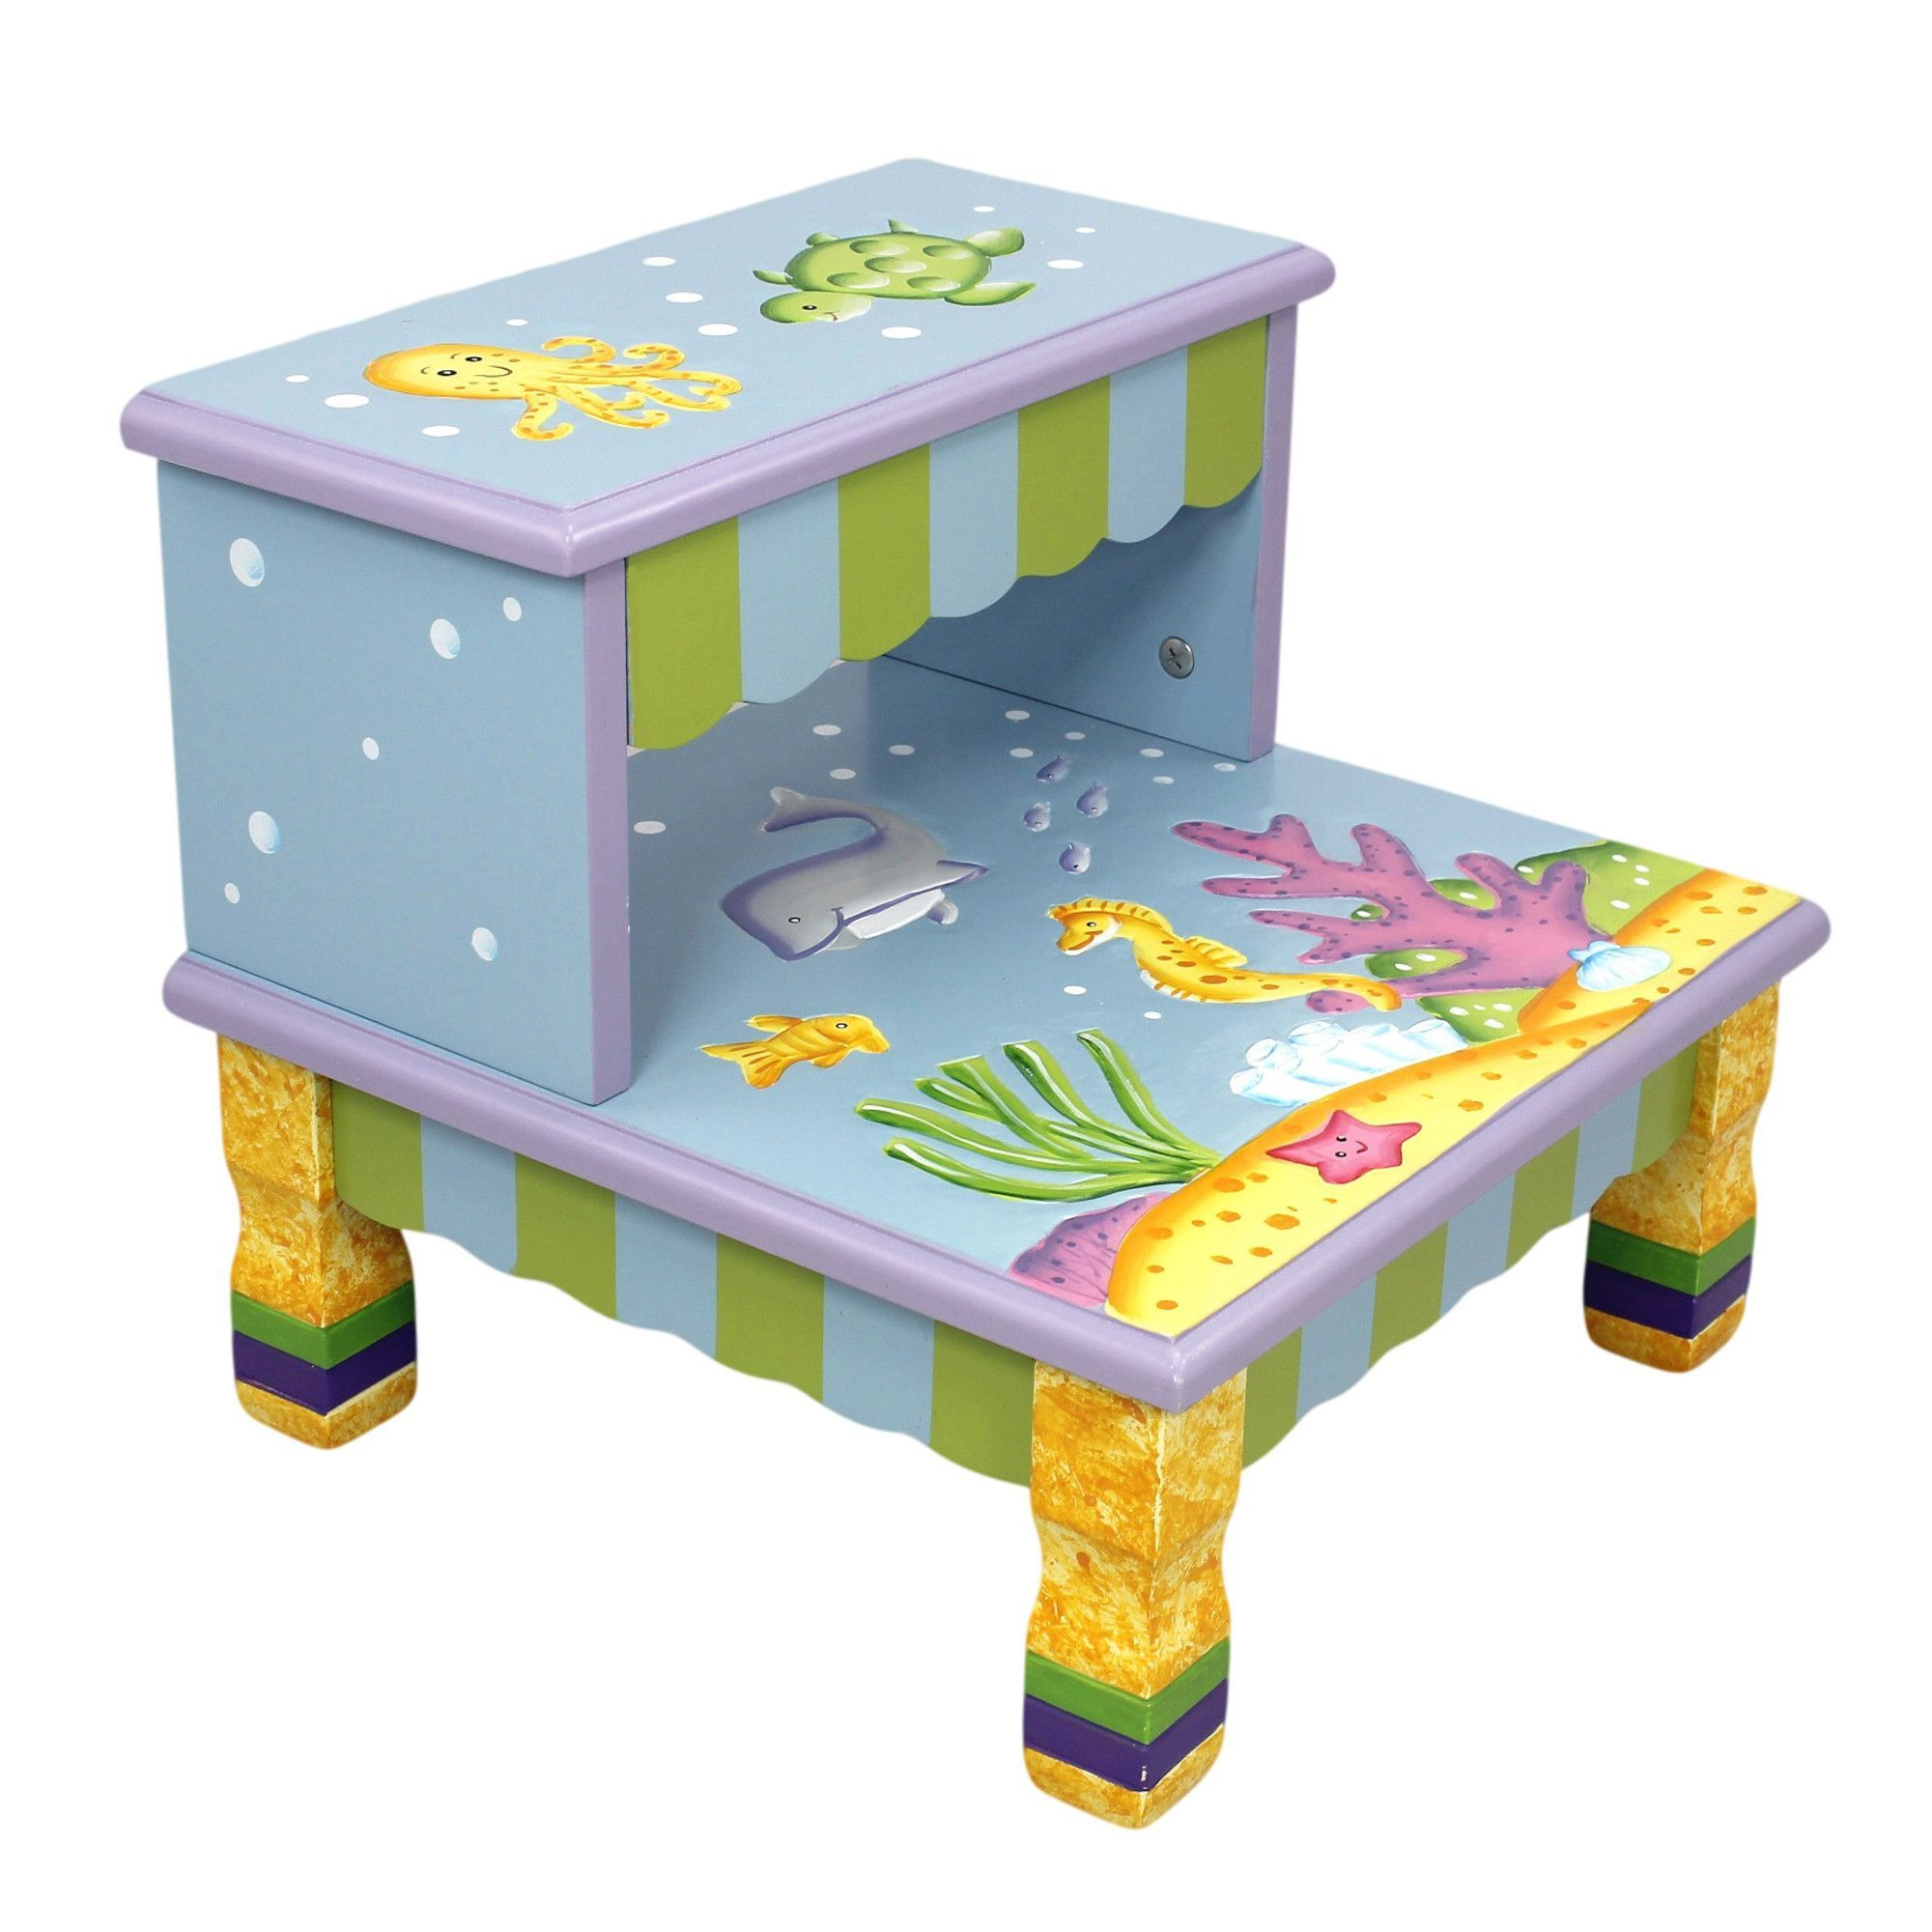 Under The Sea - Step Stool with Storage | Products | Pinterest ...